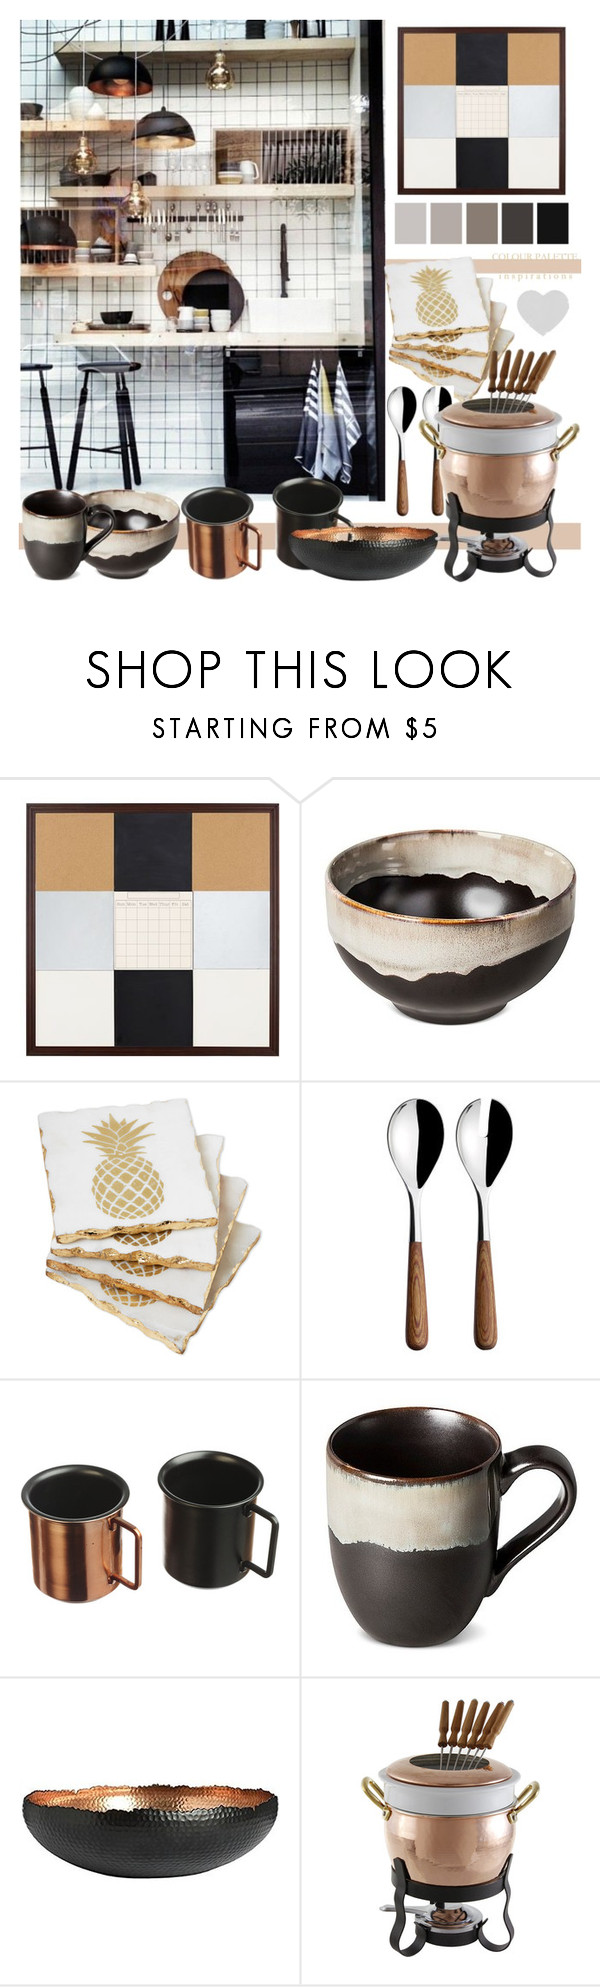 Threshold home decor shop for threshold home decor on polyvore -  Tiles By Nicolevalents Liked On Polyvore Featuring Interior Interiors Interior Design